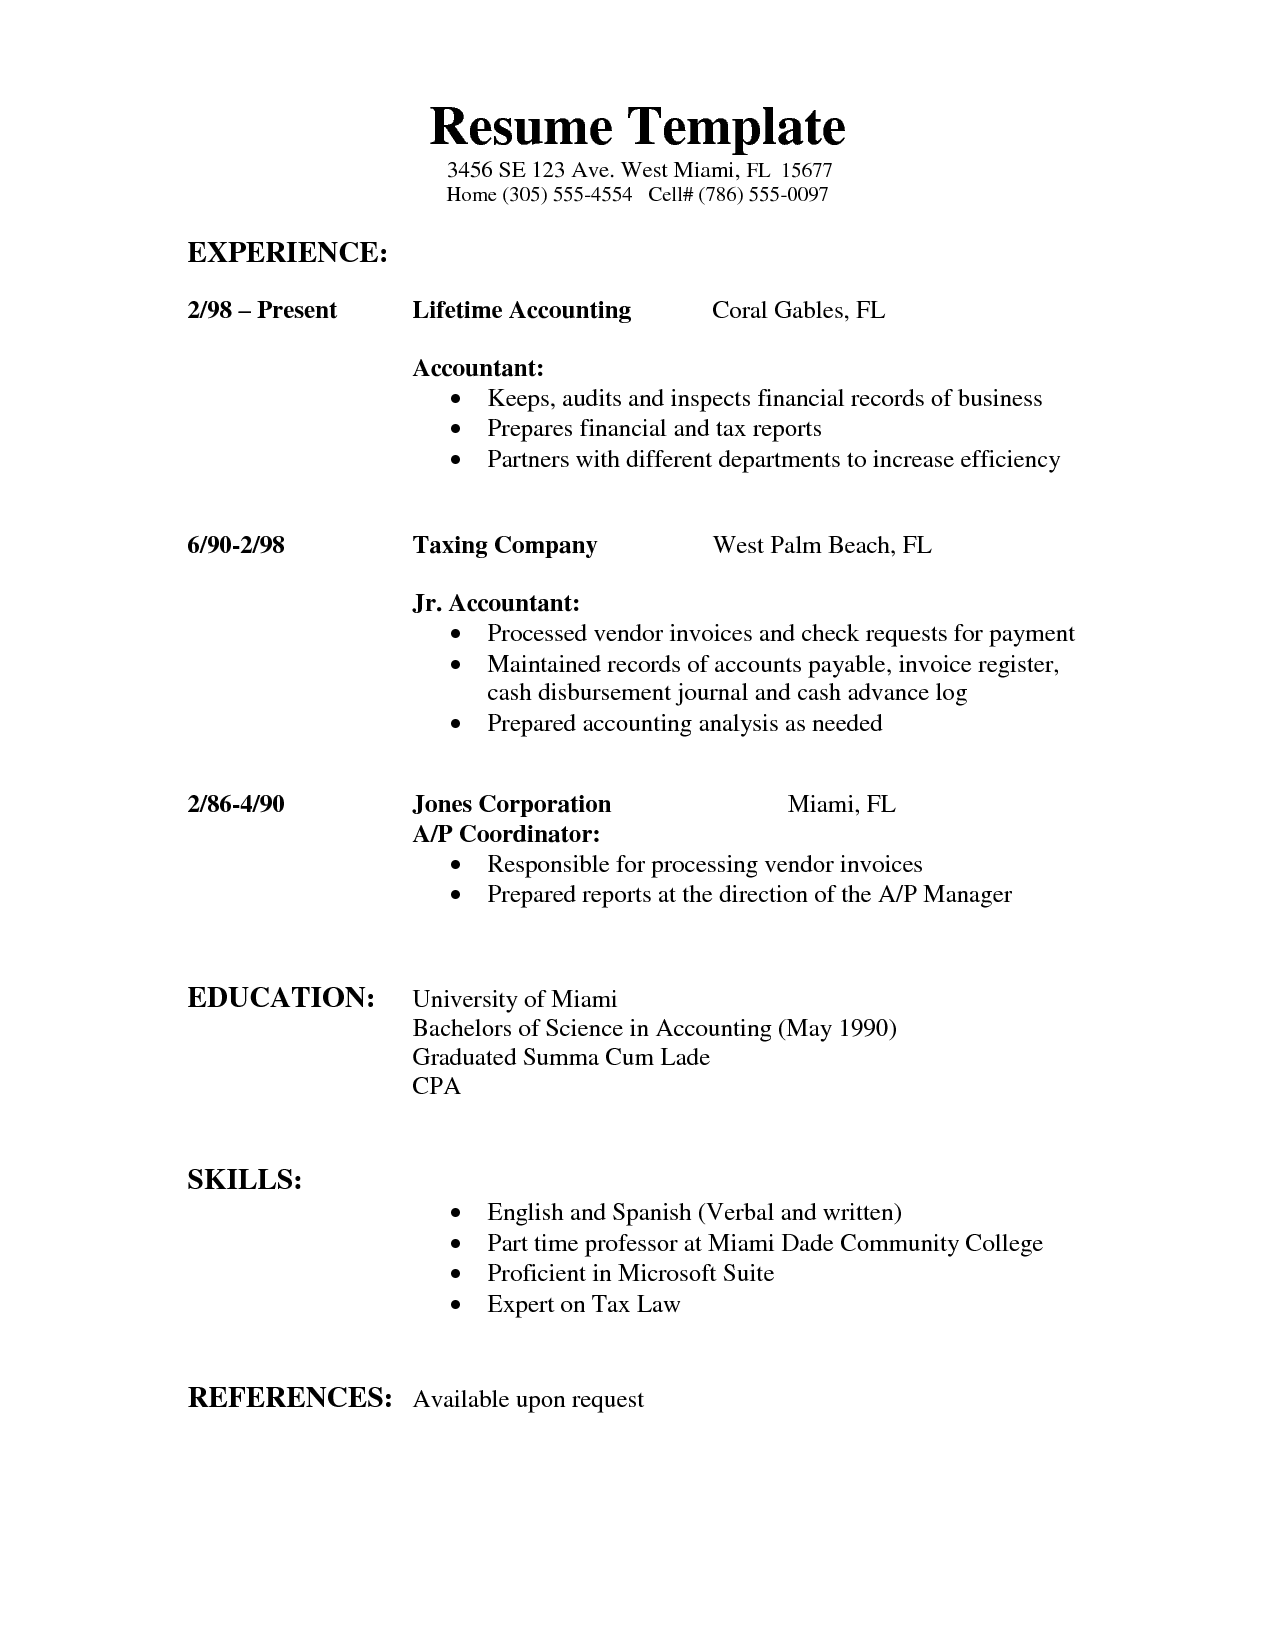 resume sample word resume templates examples anuvratfo microsoft office online resume templates samples word